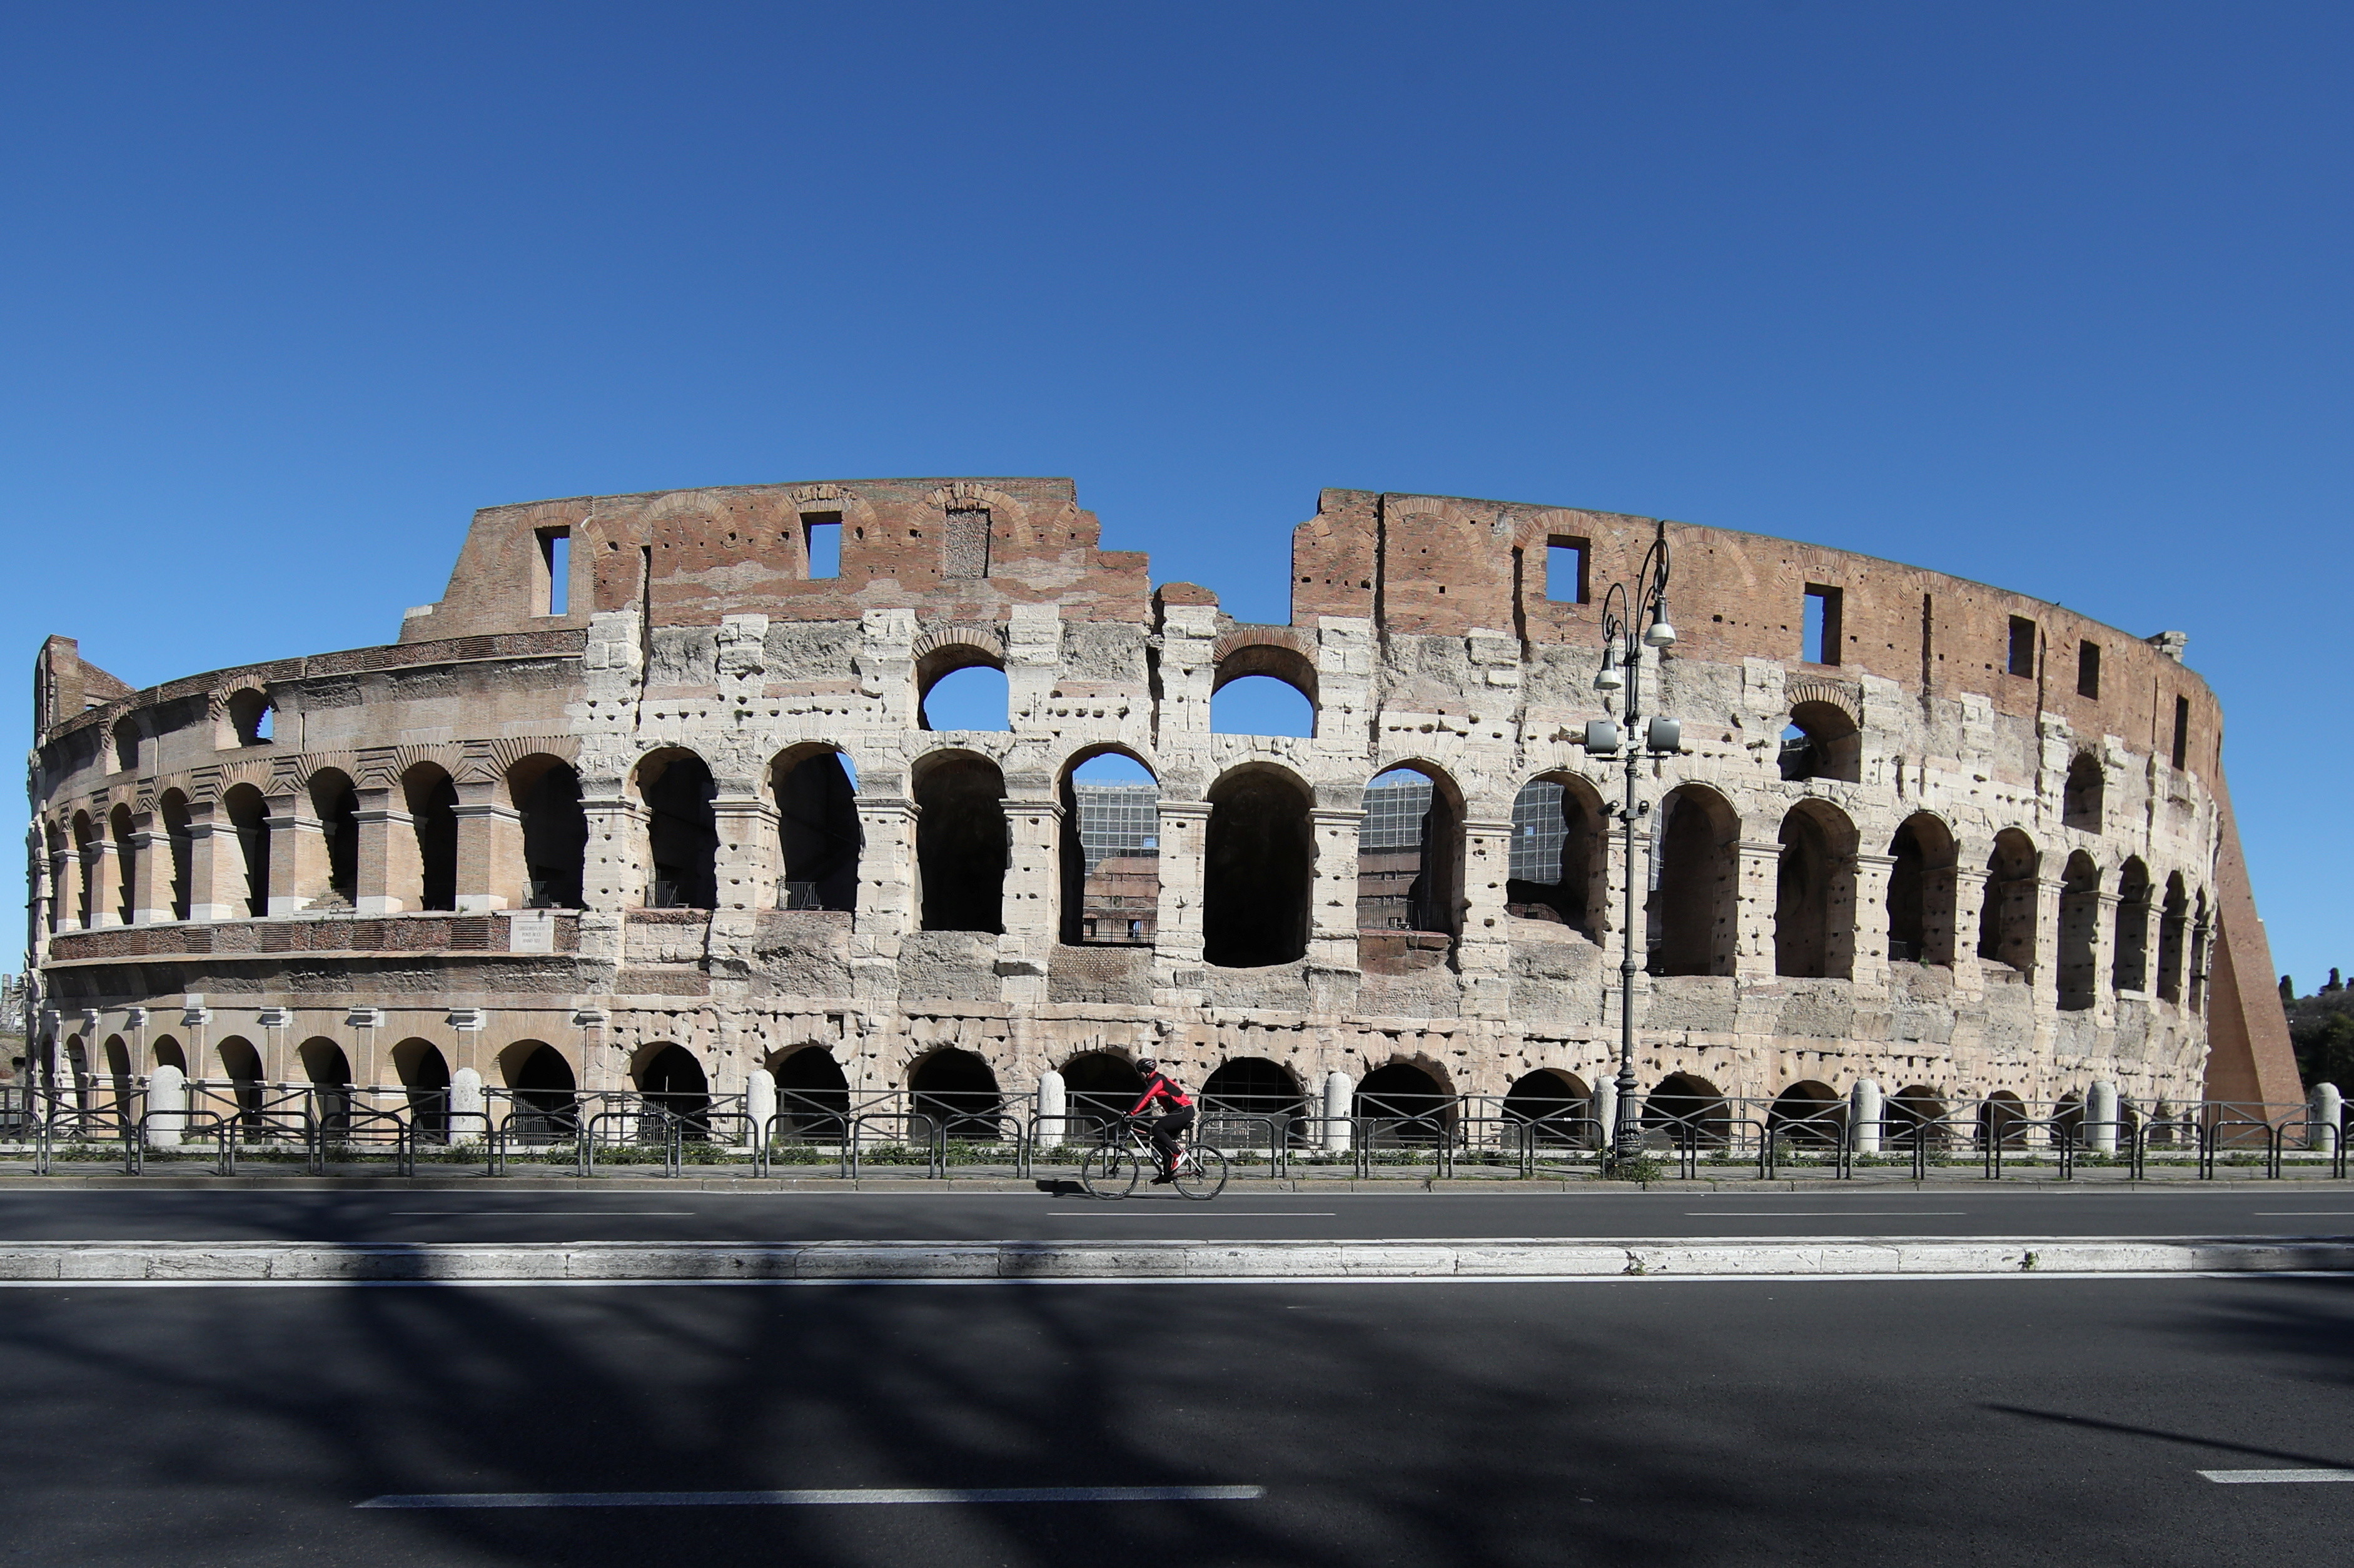 A person rides a bike in front of the Colosseum as Rome becomes a 'red zone', going into lockdown, as the country struggles to reduce the coronavirus disease (COVID-19) infections, in Rome, Italy, March 15, 2021. REUTERS/Yara Nardi - RC2MBM9LJI0U